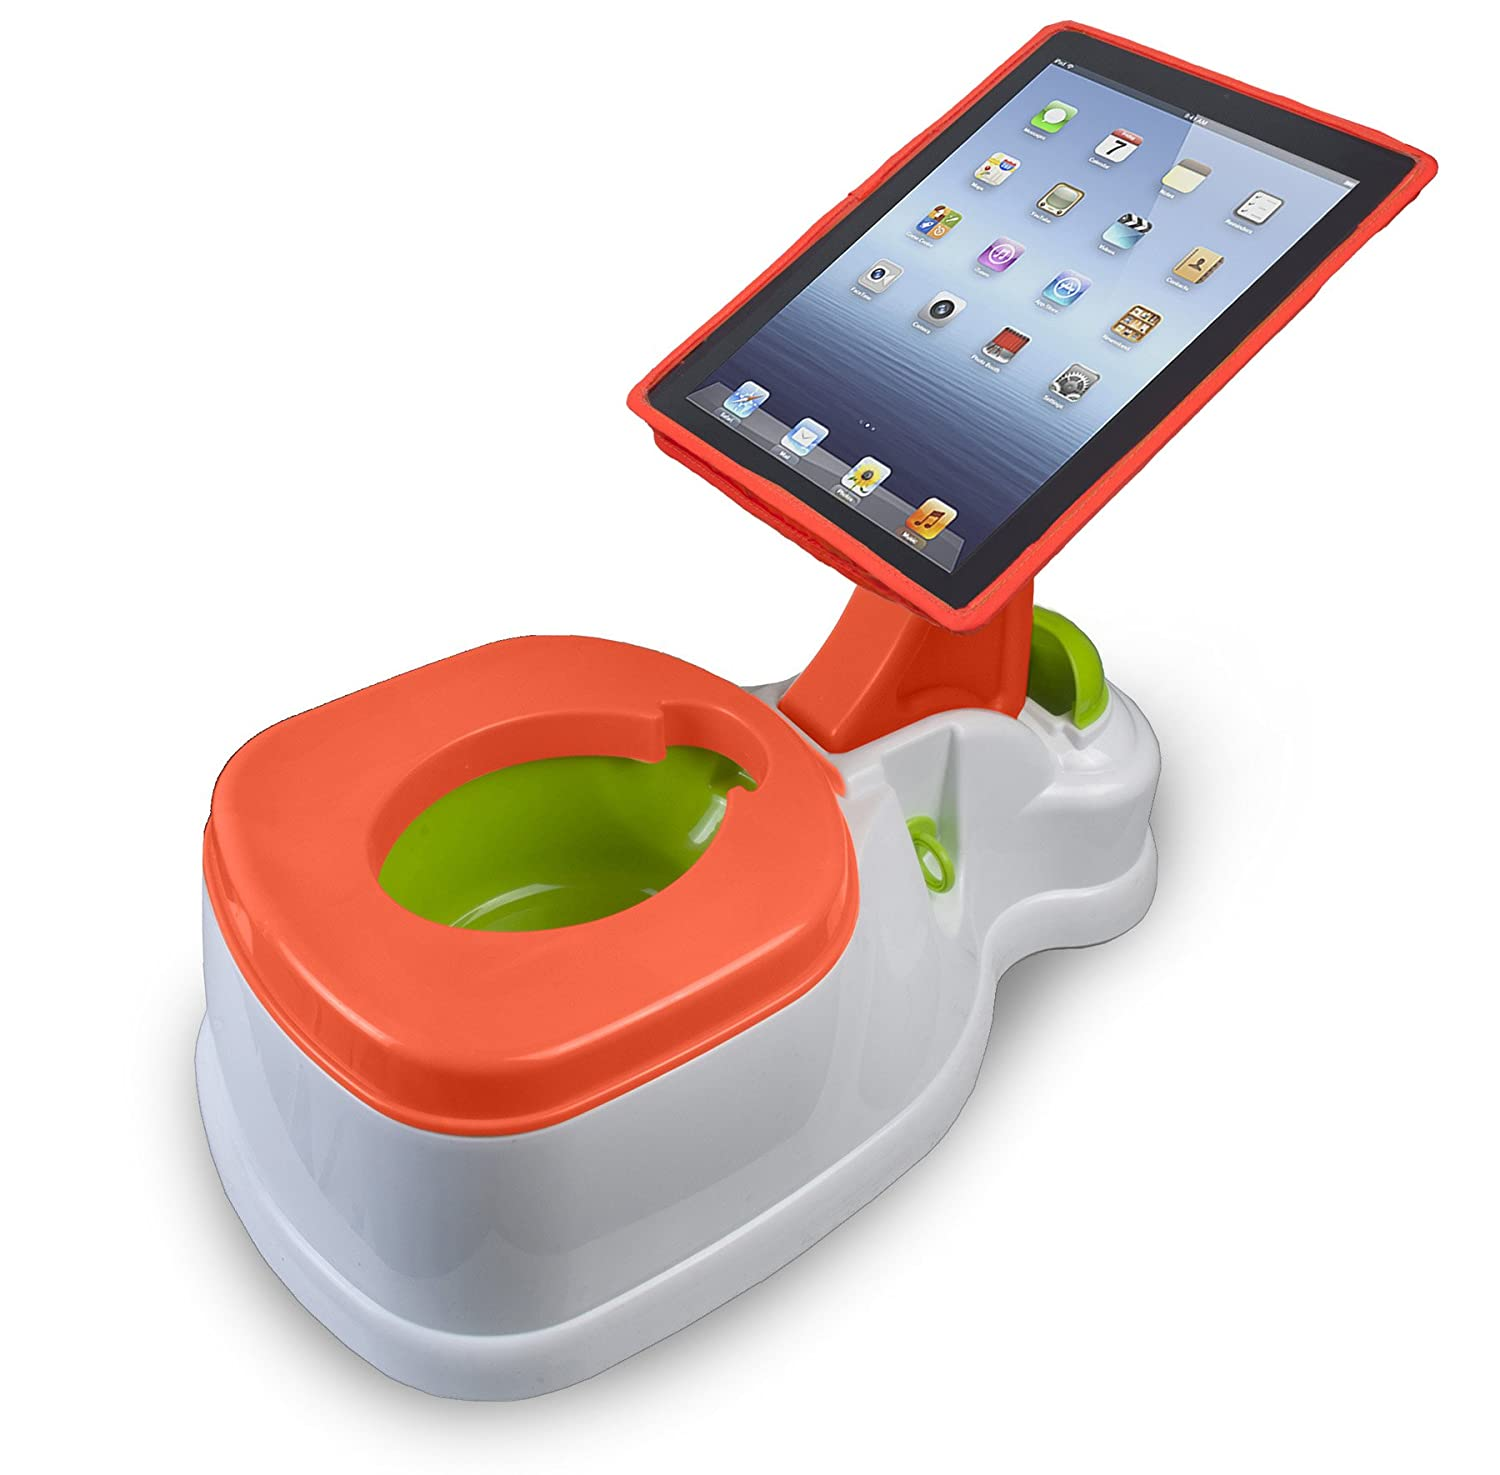 Amazon CTA Digital 2 in 1 iPotty with Activity Seat for iPad